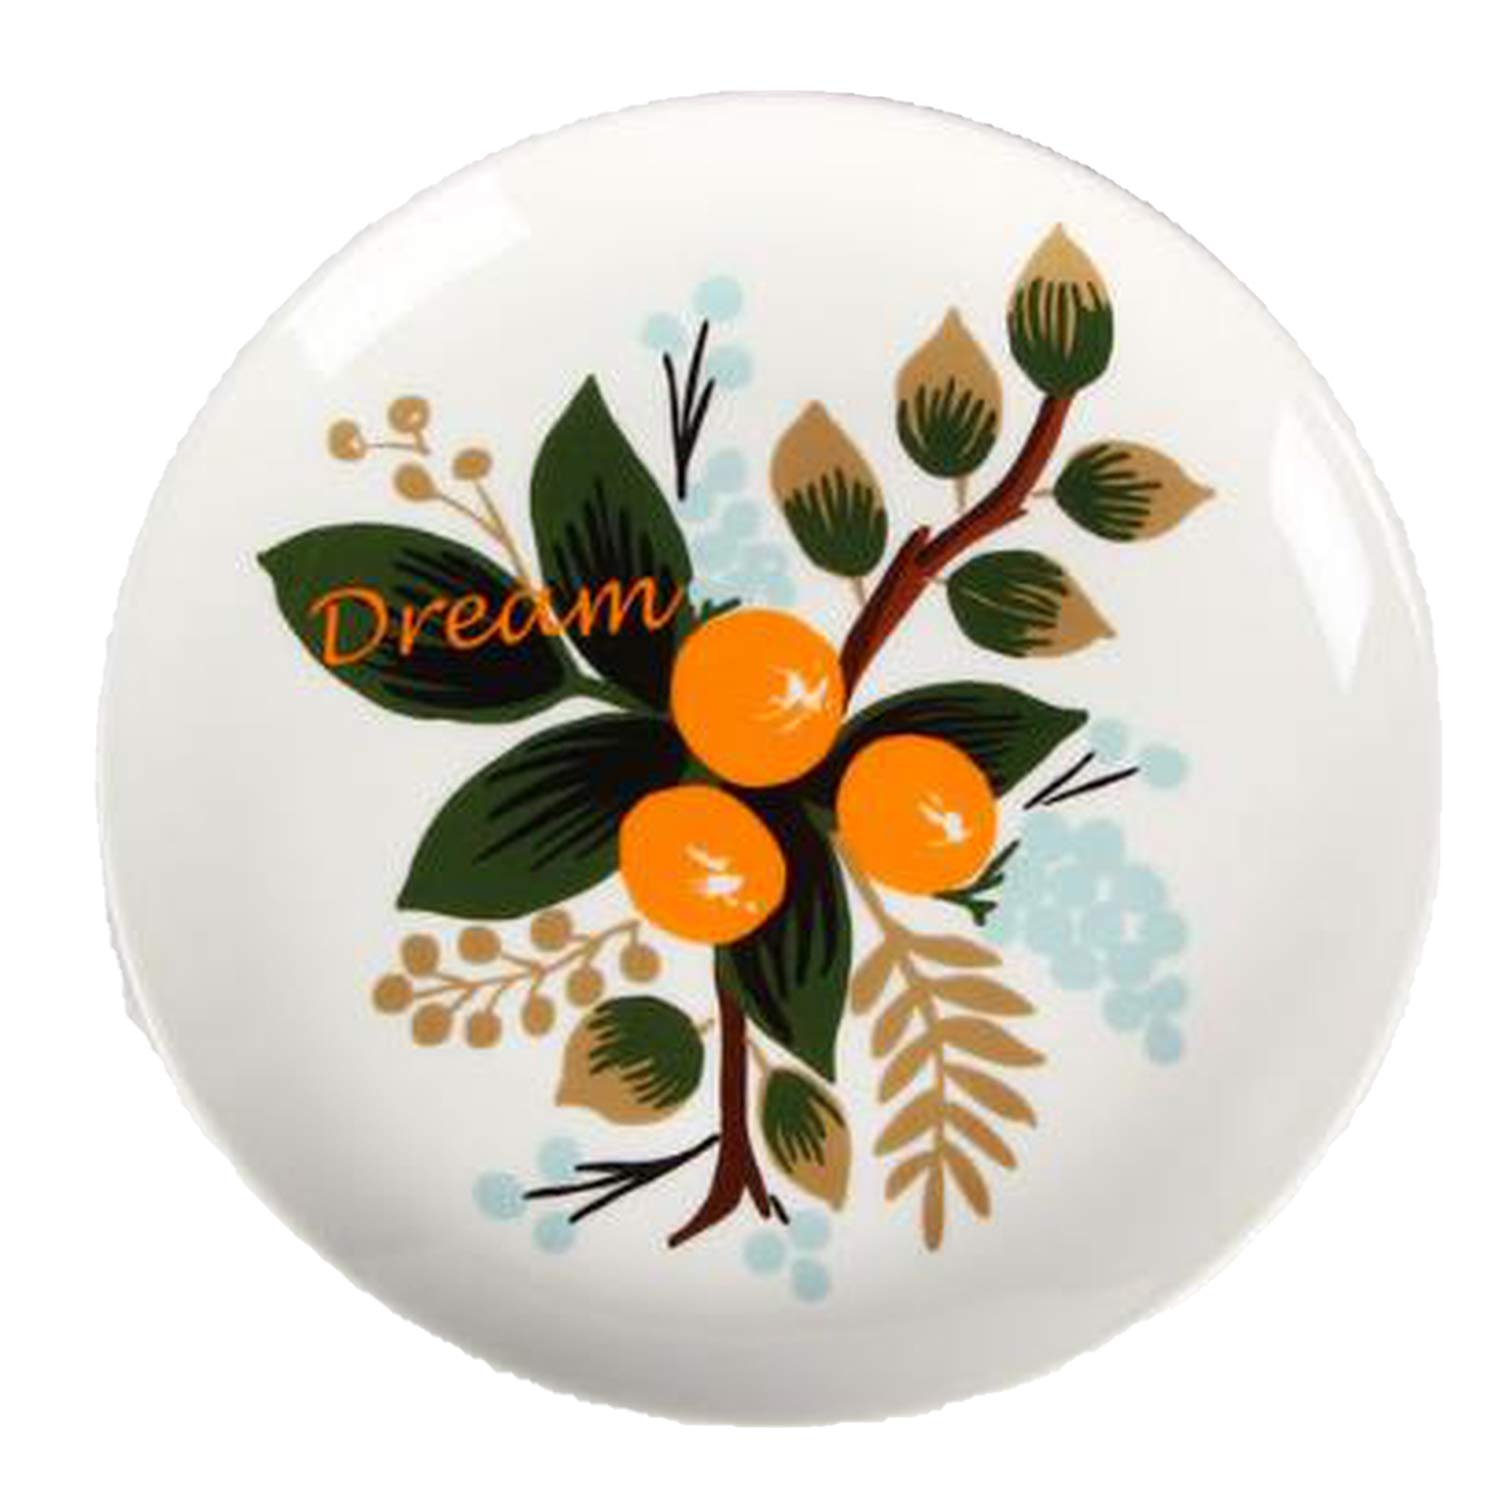 ONLY-FOR-ME-1 Mediterranean Hanging Plate Decorative Tray Sitting Disk Ceramic Plate Creative Home Art Plate Craft Gift Tray,3,10inch About 266mm